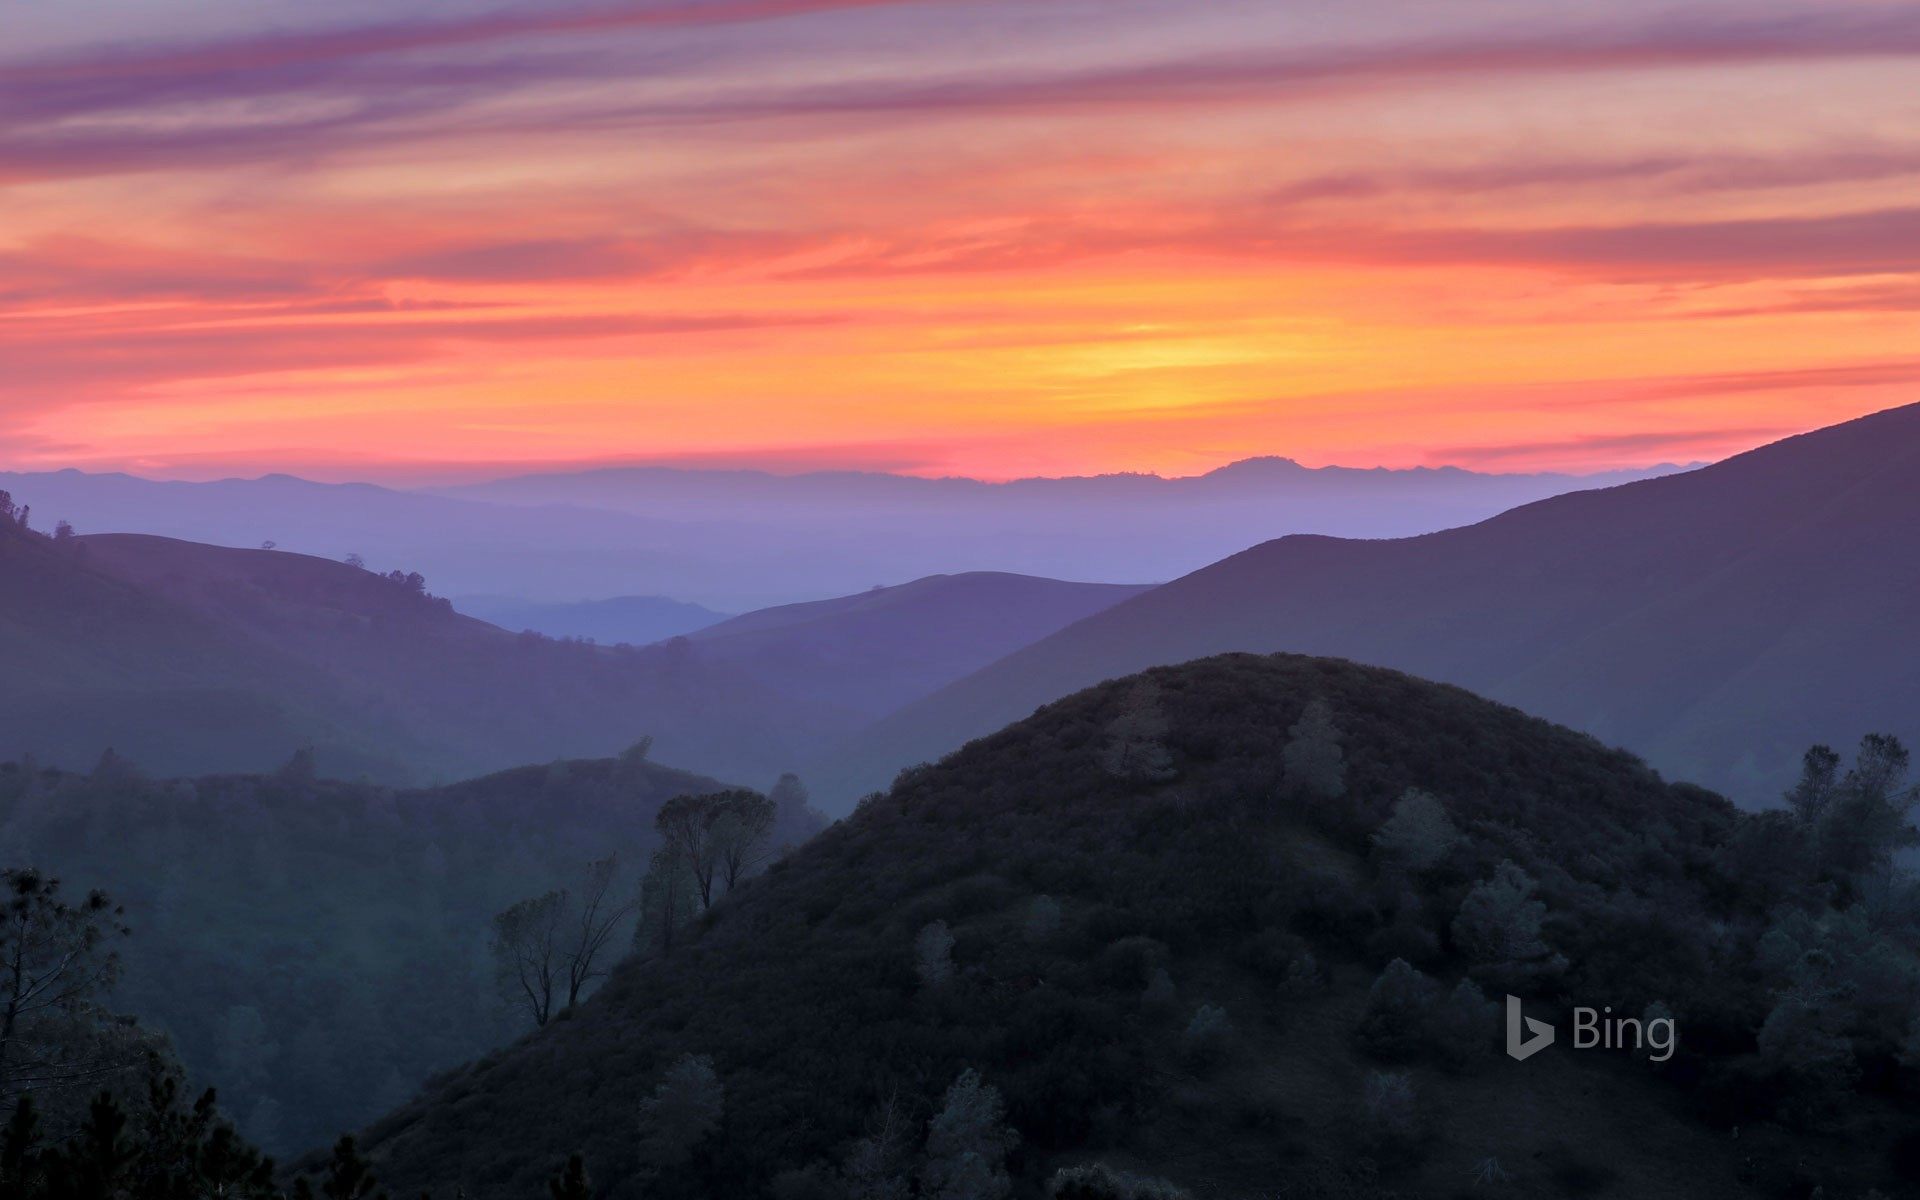 Mount Diablo State Park, California, USA